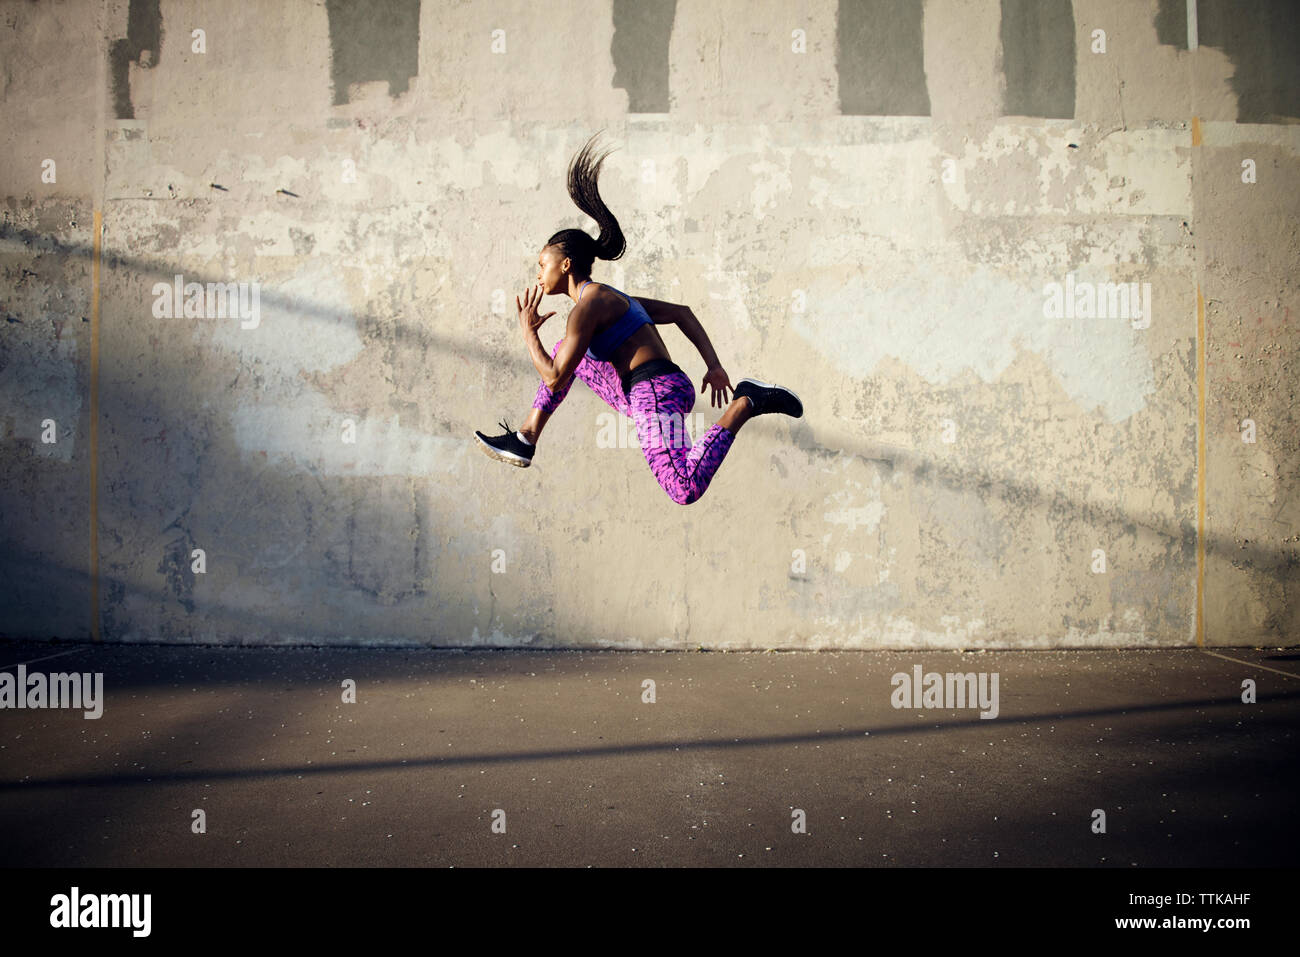 Side view of woman jumping in mid-air against wall - Stock Image